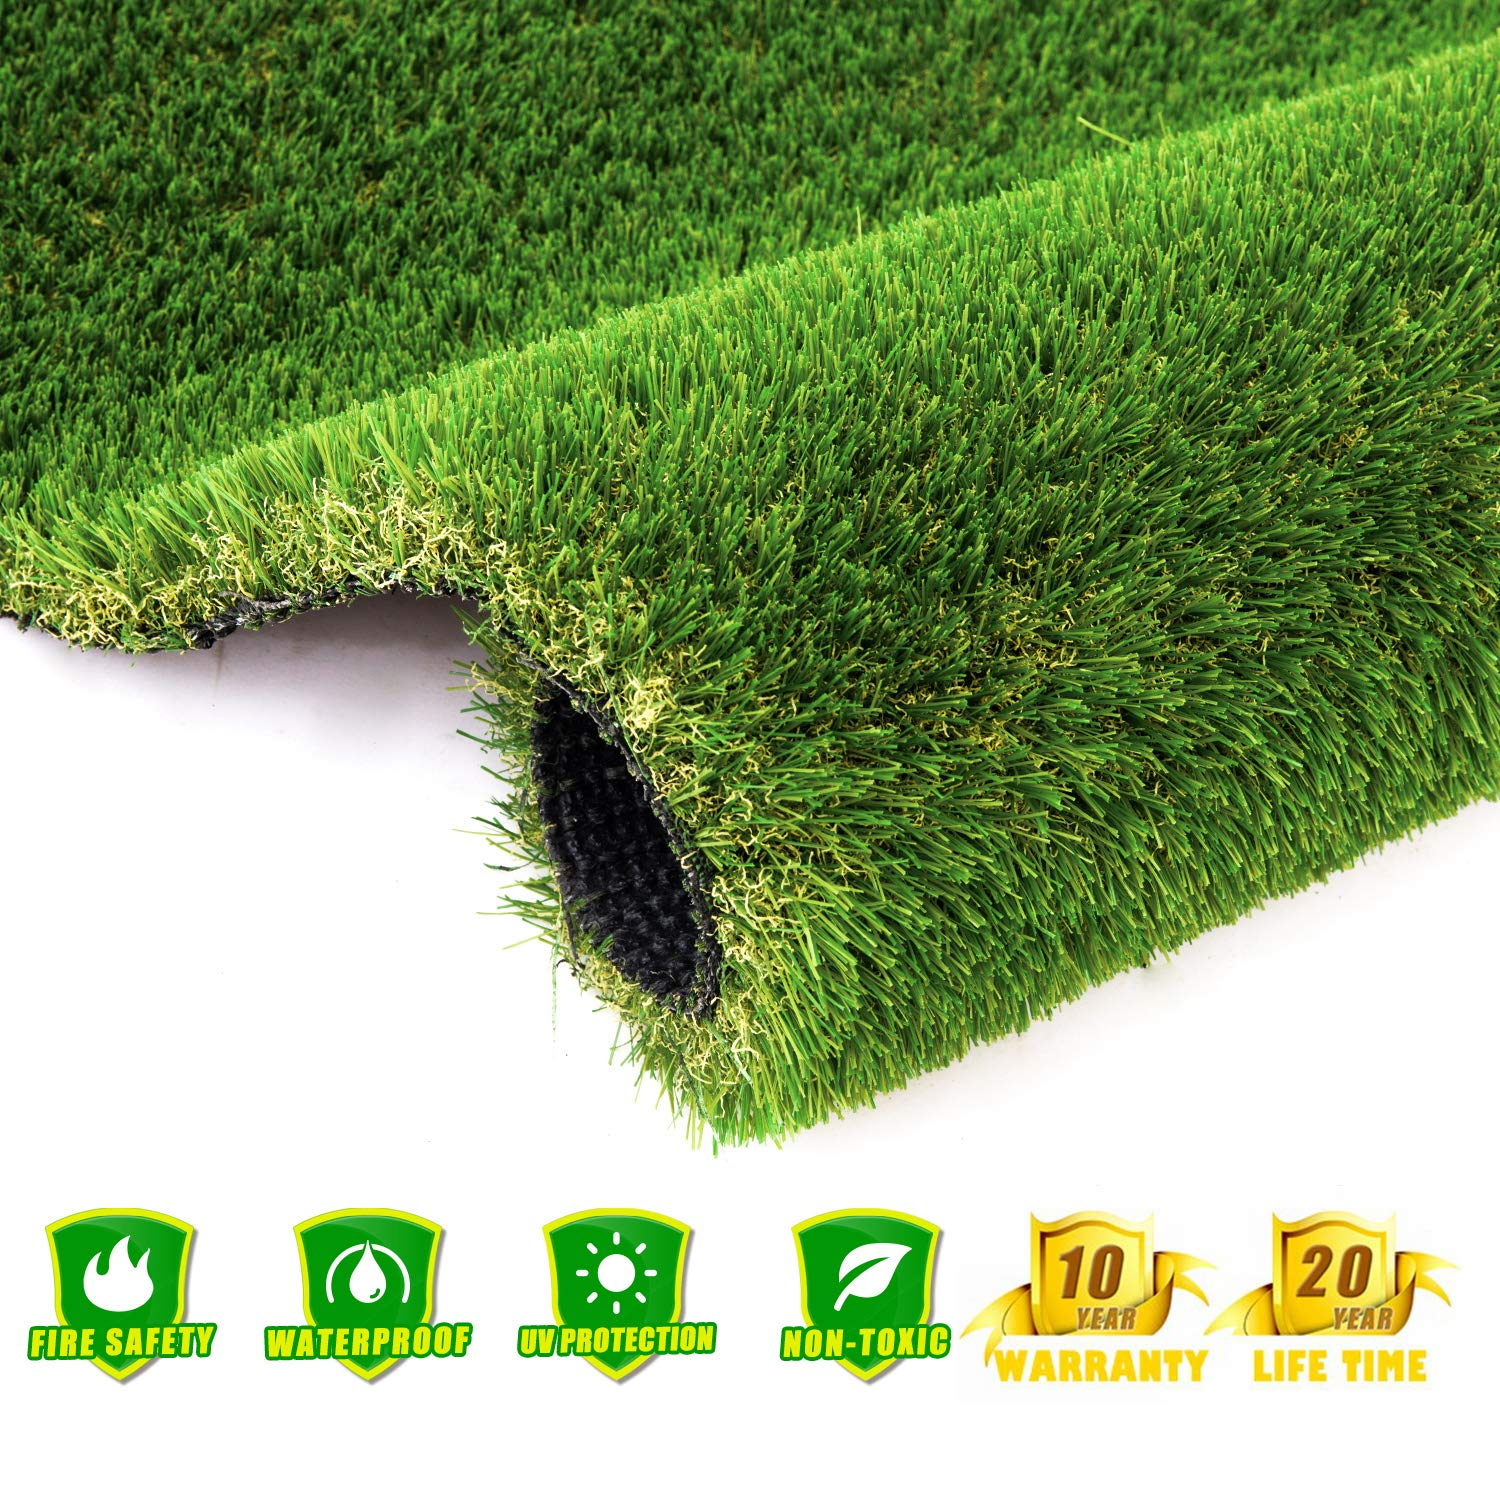 AYOHA 7' x 13' (91 Square ft) Artificial Grass, Realistic Fake Grass Deluxe Synthetic Turf Thick Lawn Pet Turf, Perfect for Carpet Doormat Indoor/Outdoor Landscape, 35mm Pile Height